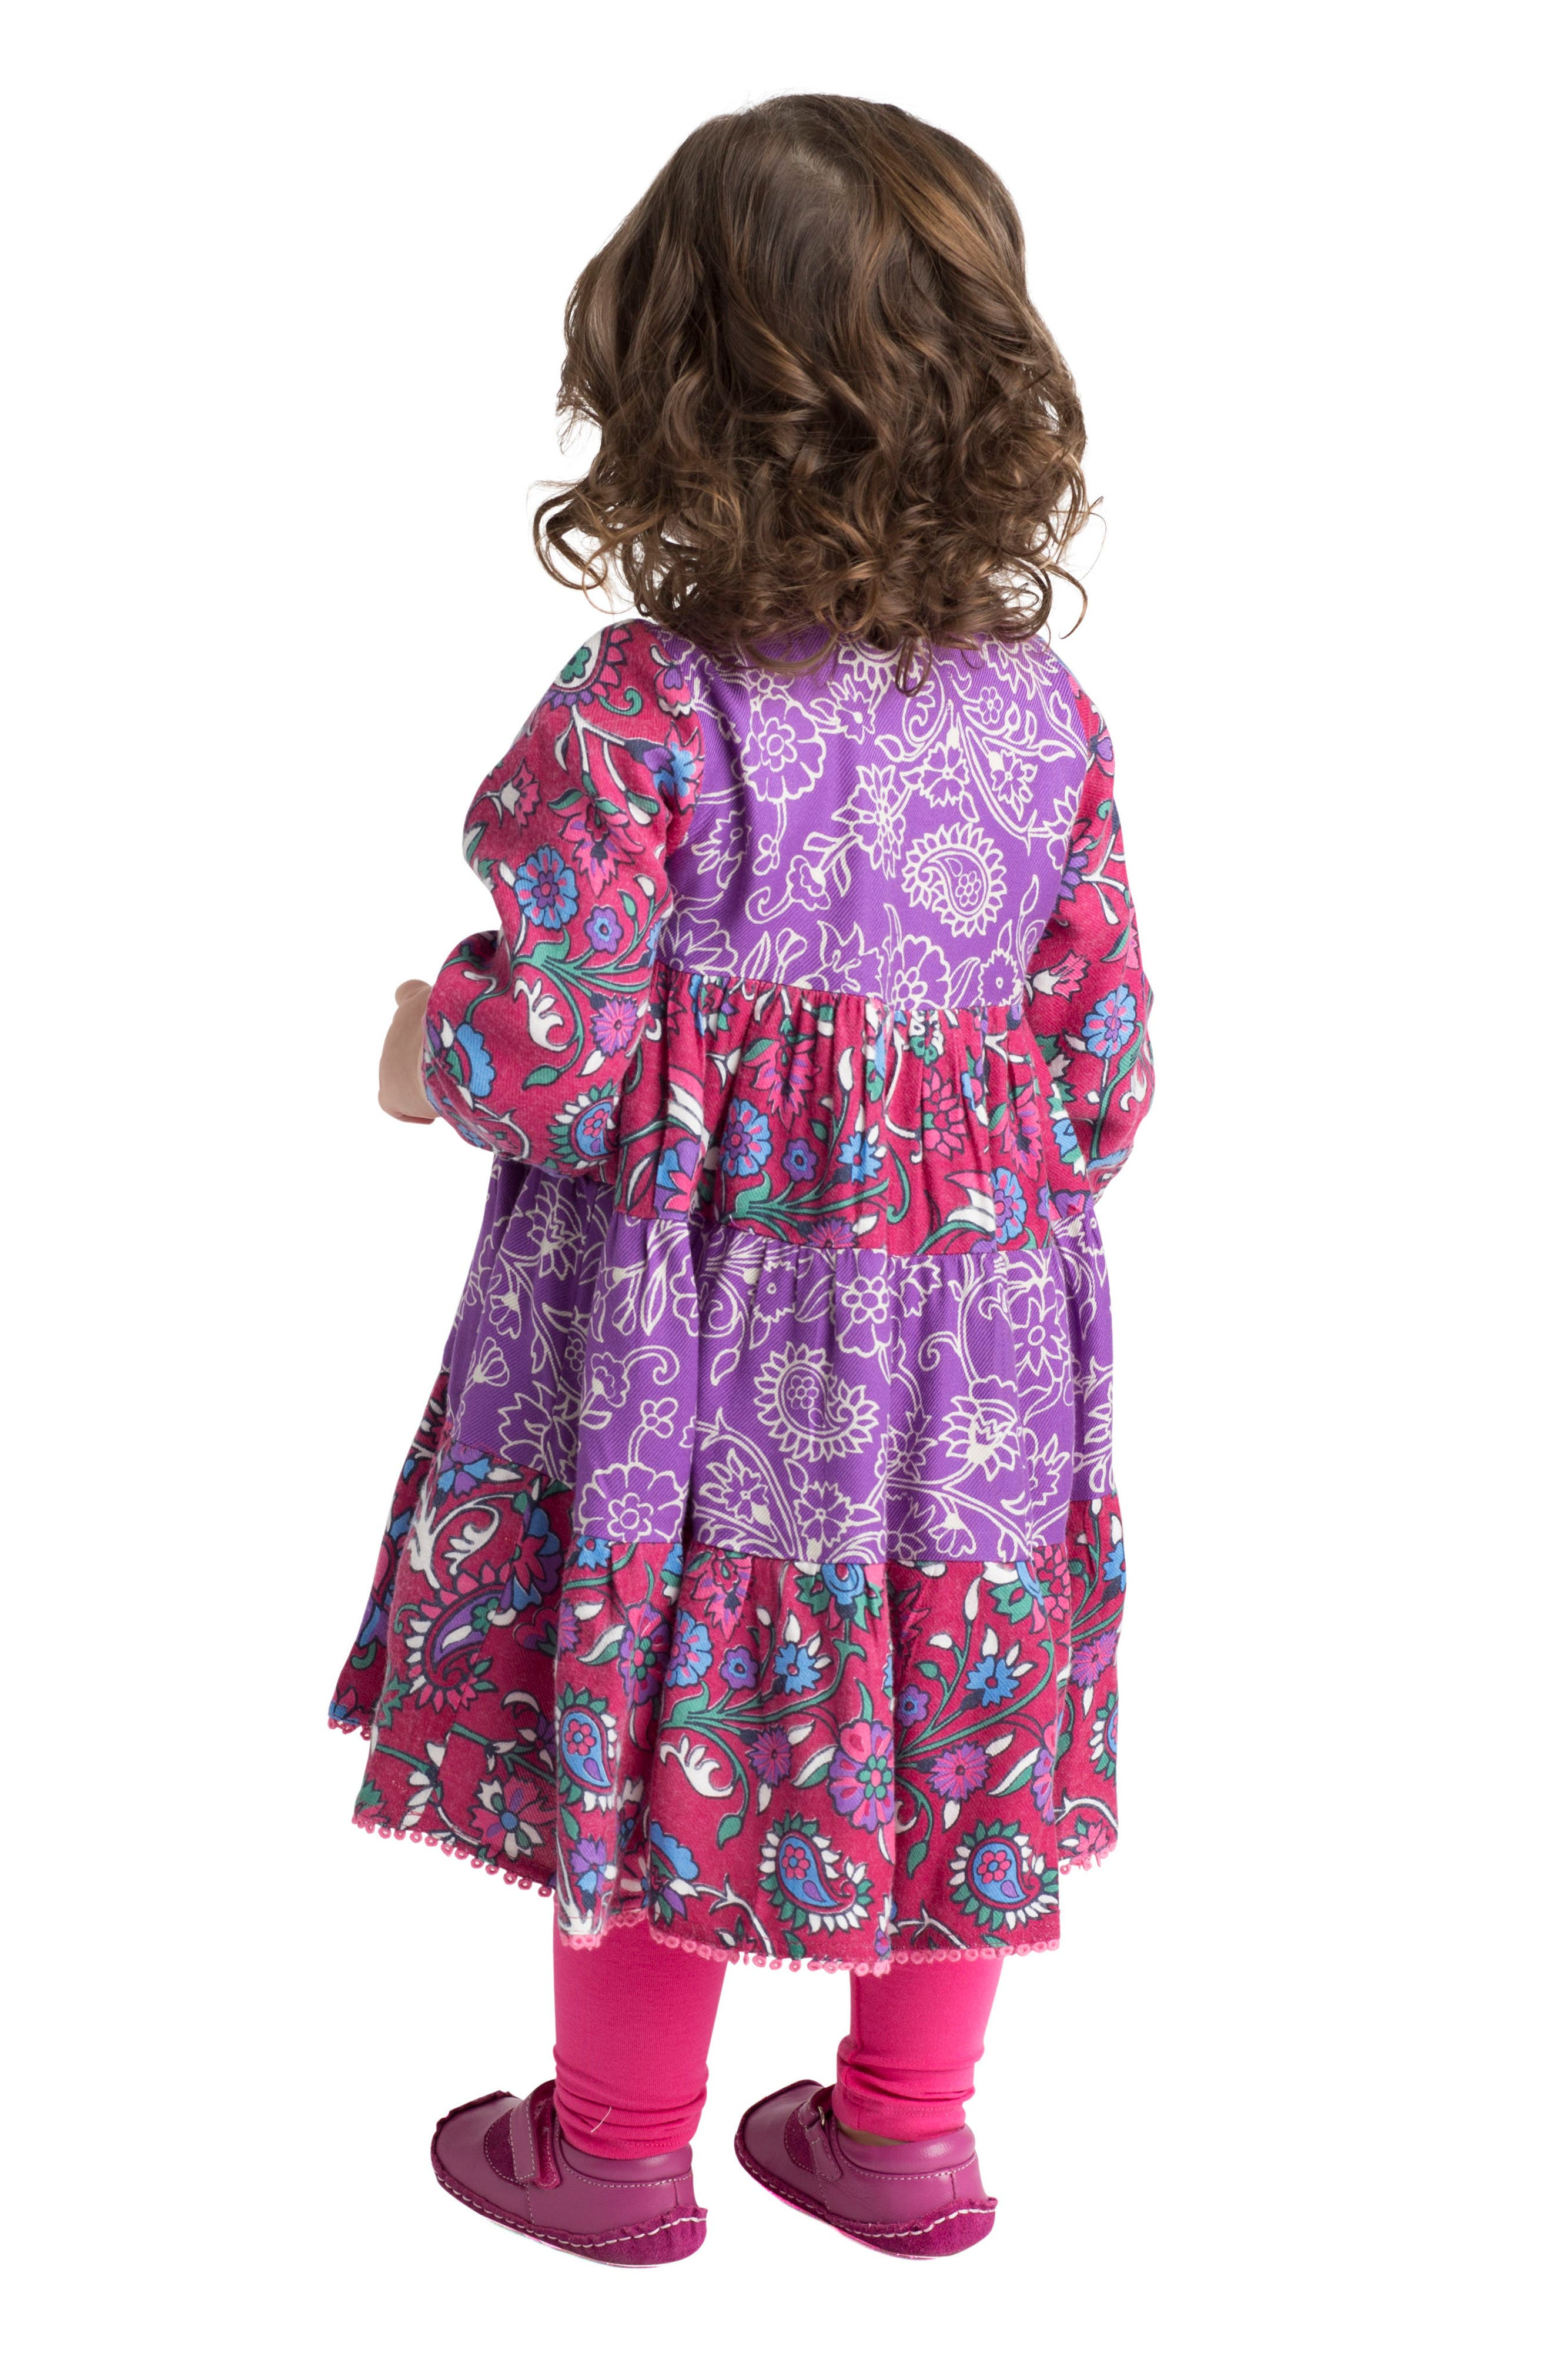 Tiered Floral Dress,                             Alternate thumbnail 2, color,                             930